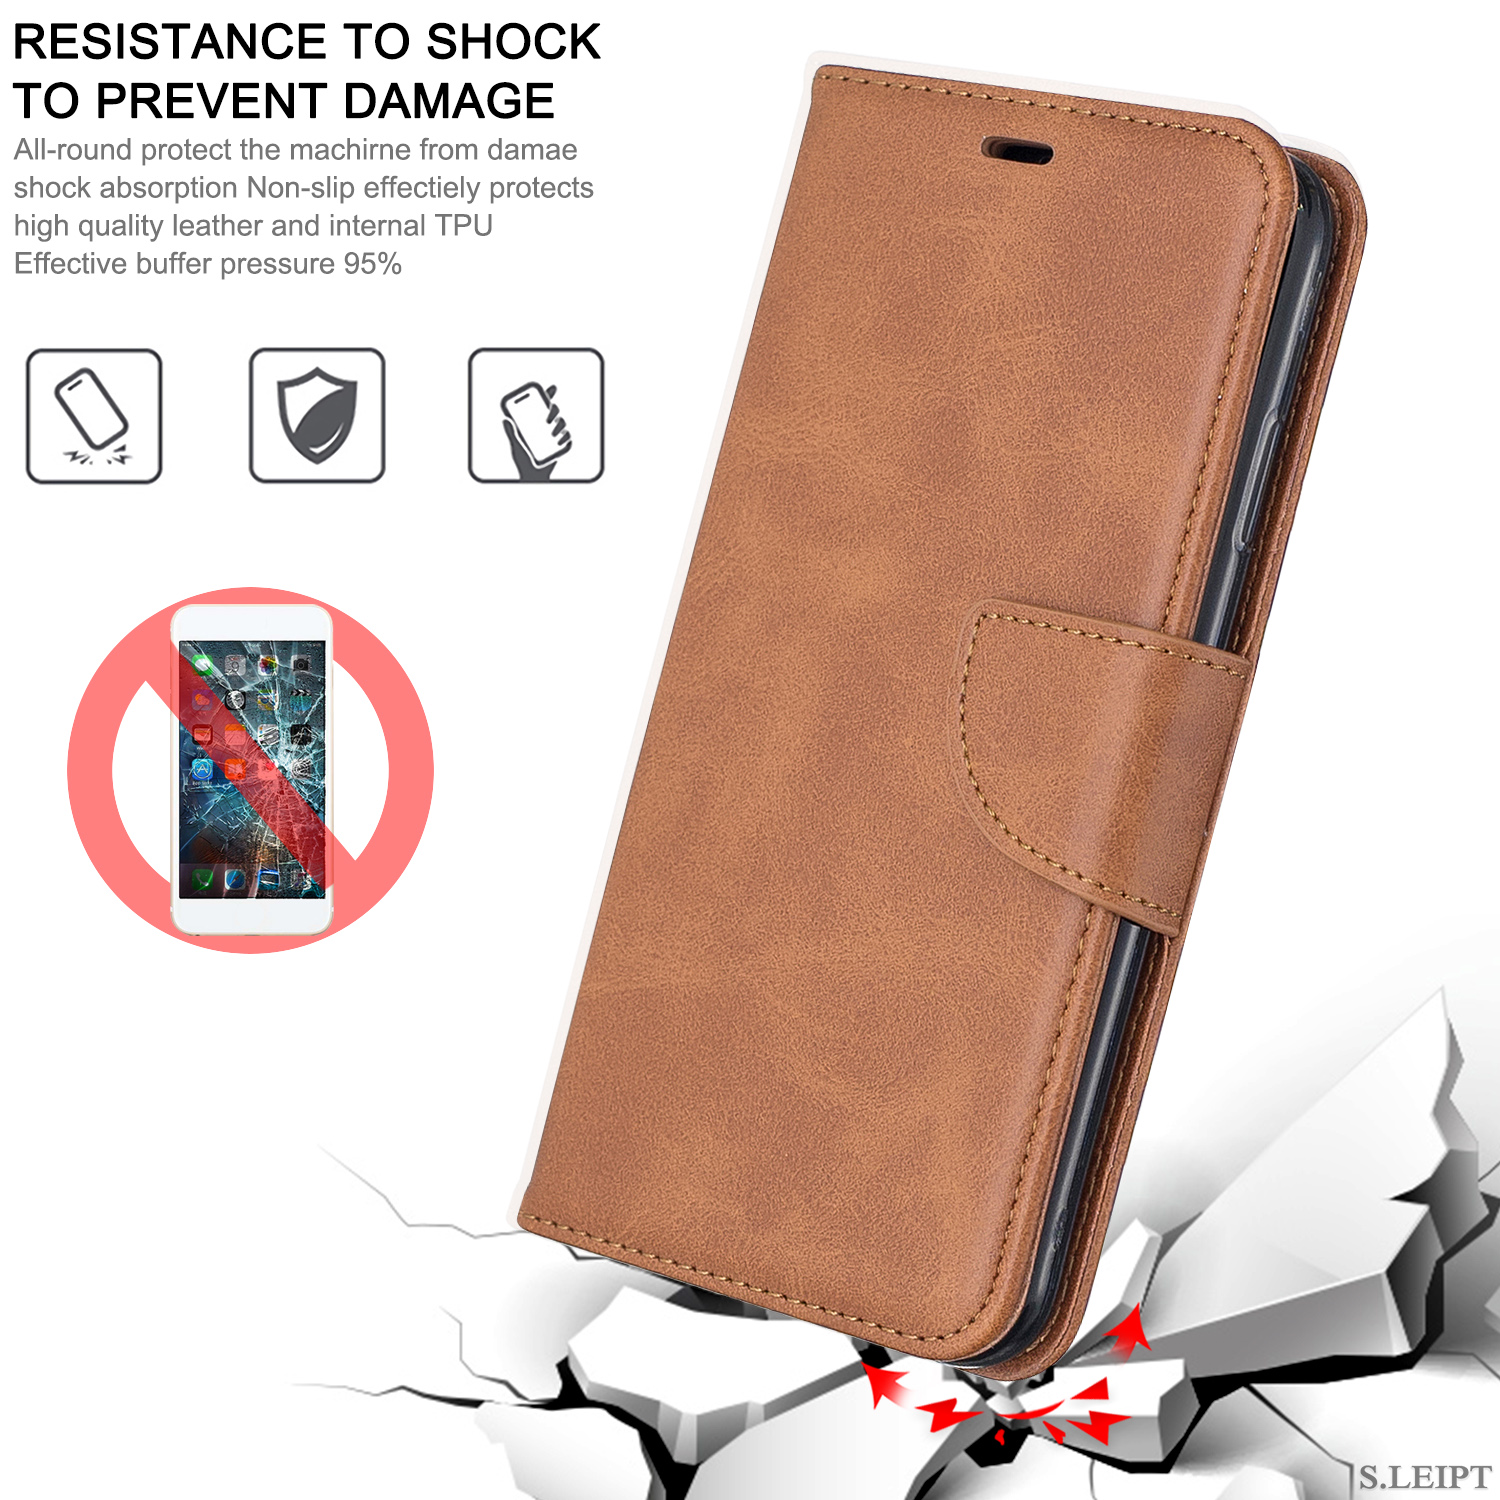 Magnetic-Flip-Card-Wallet-Leather-Phone-Case-For-Sony-Xperia-XA2-Ultra-XZ1-L3-10 thumbnail 29